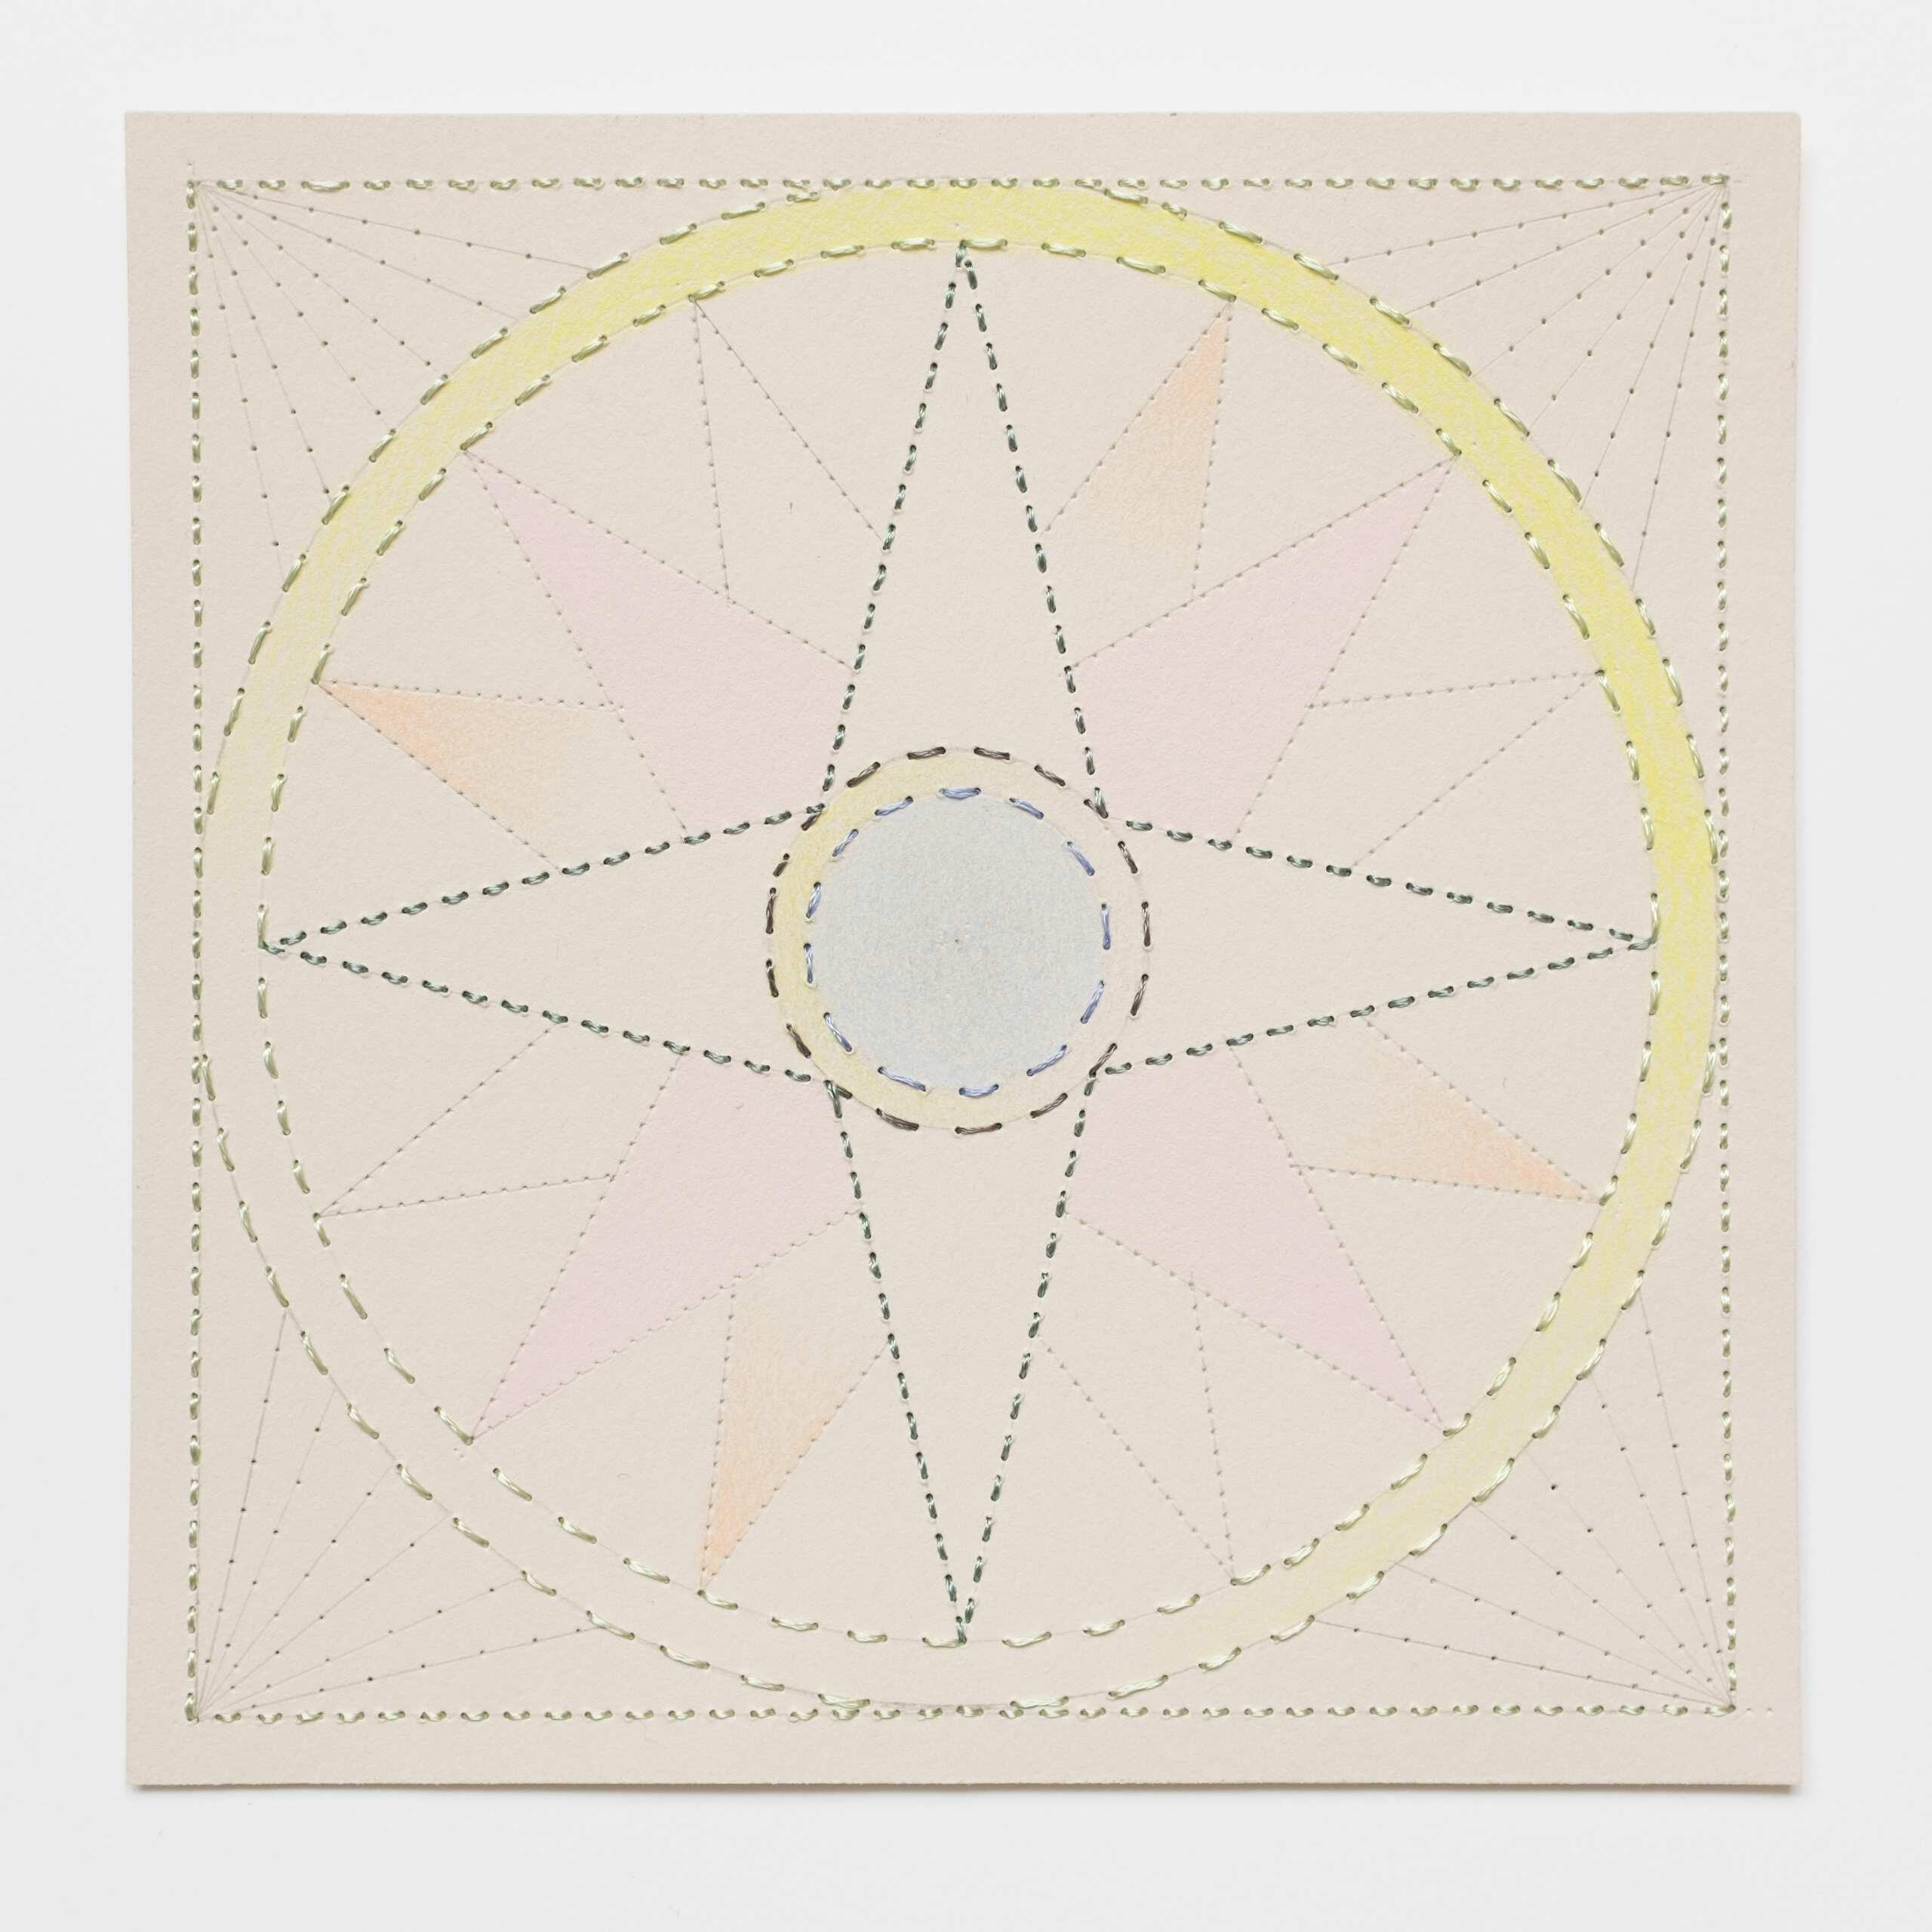 Quilted Composition [grey // compass], Hand-embroidered silk on paper, pencil, coloured pencil, 2019